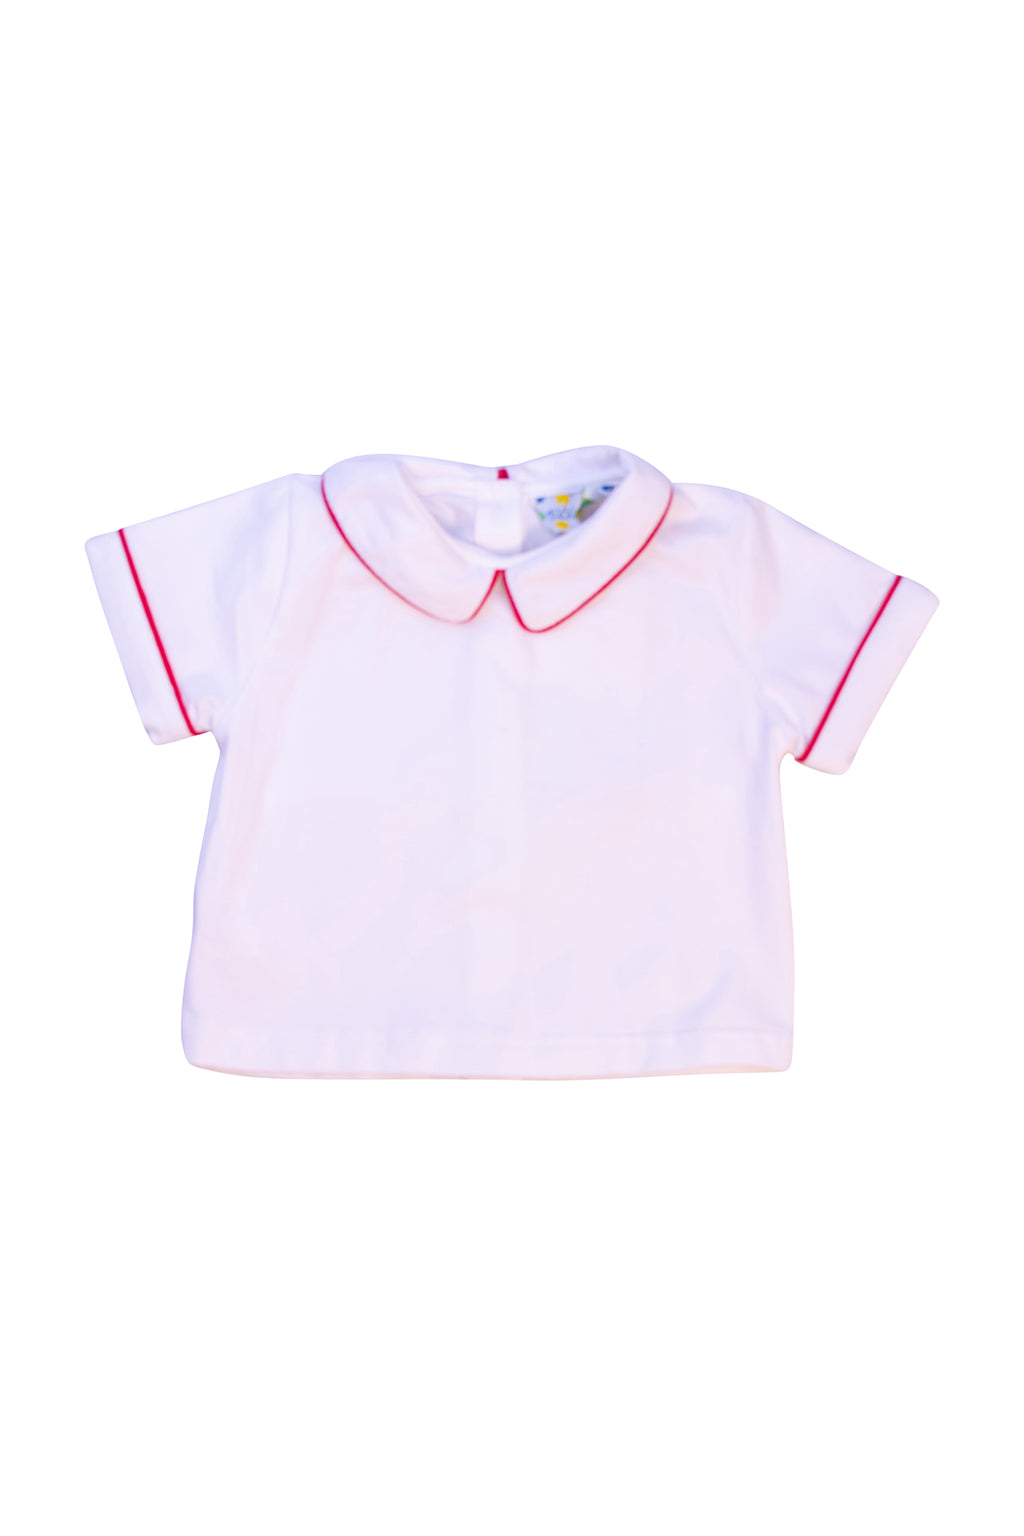 Boys Knit Red Trim Collared Shirt